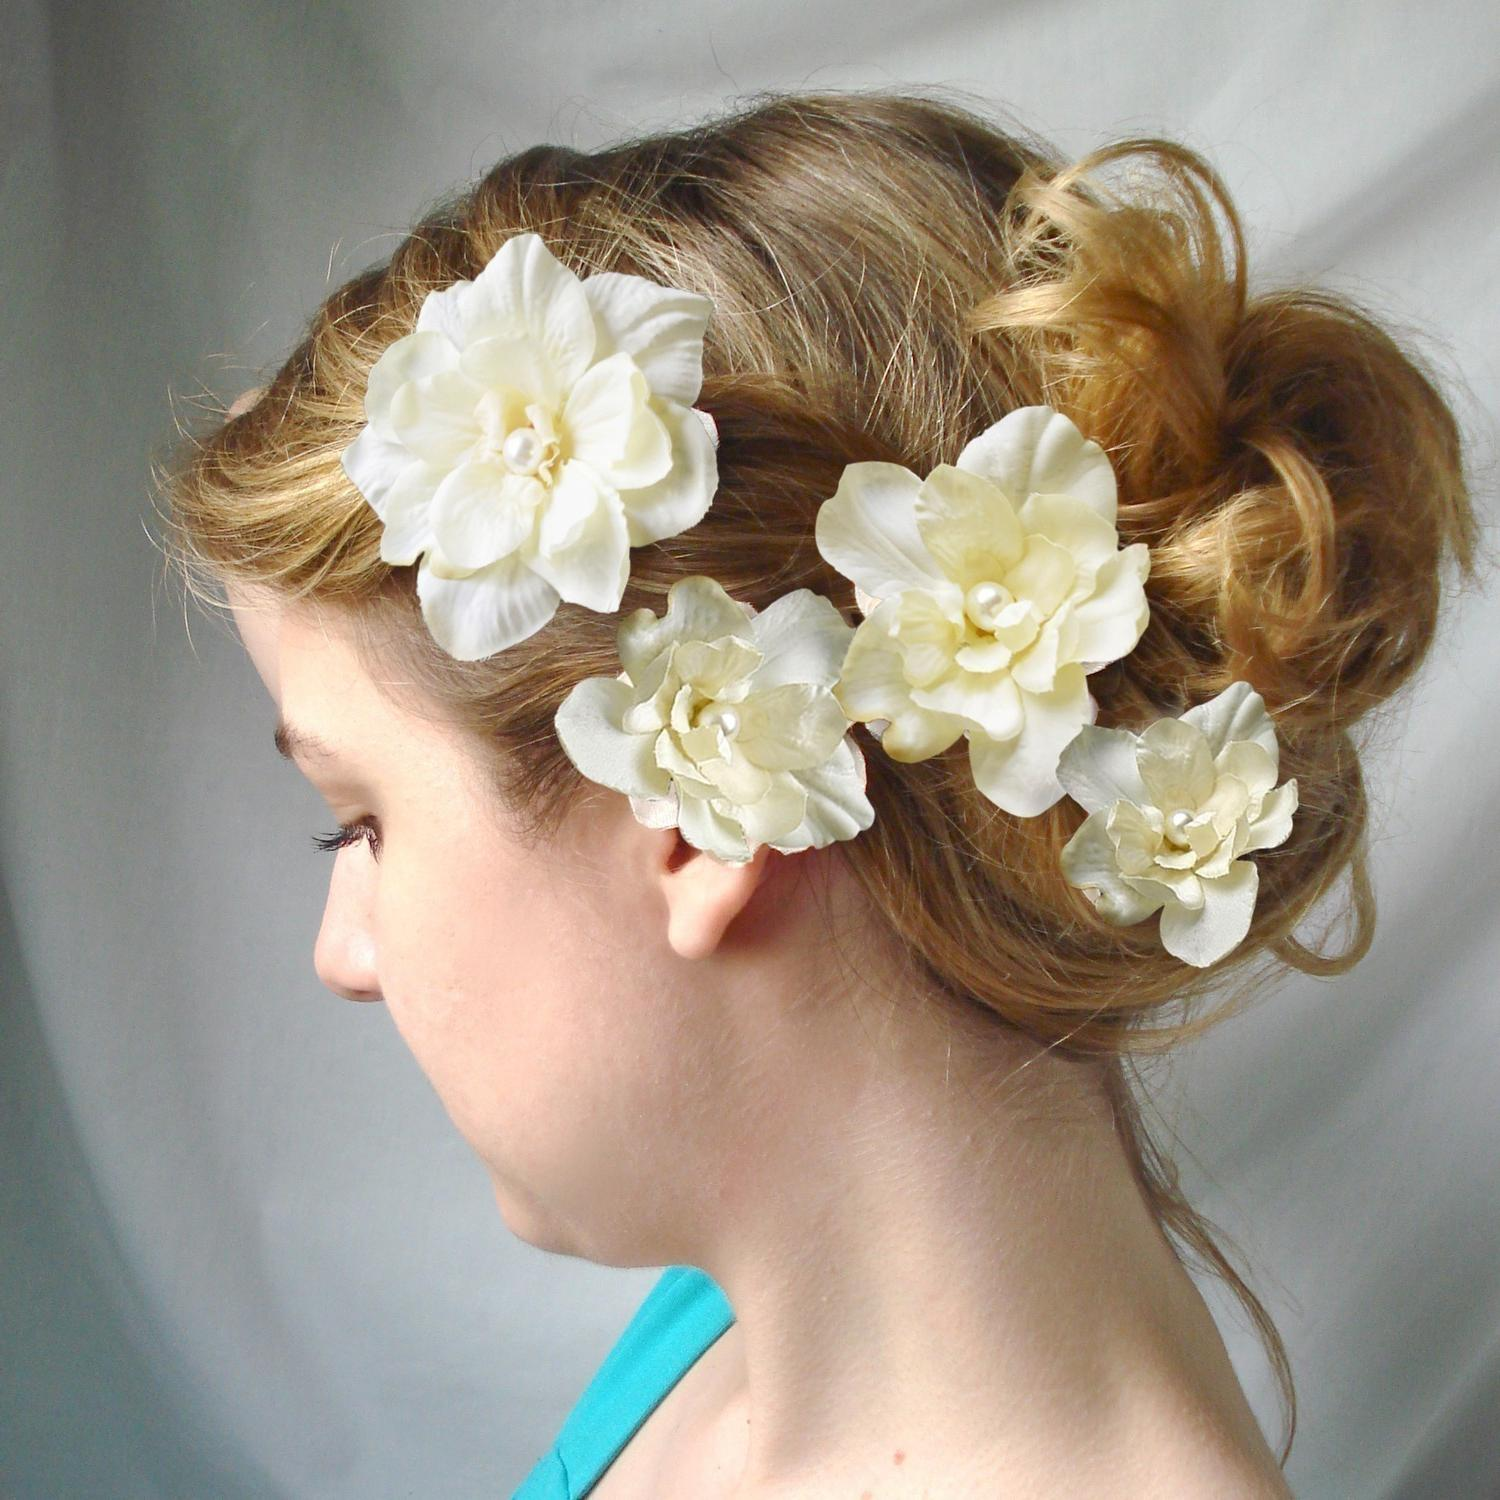 Flower Hair Pins For Wedding: Wilmide's Blog: Ivory Flower Hair Clips